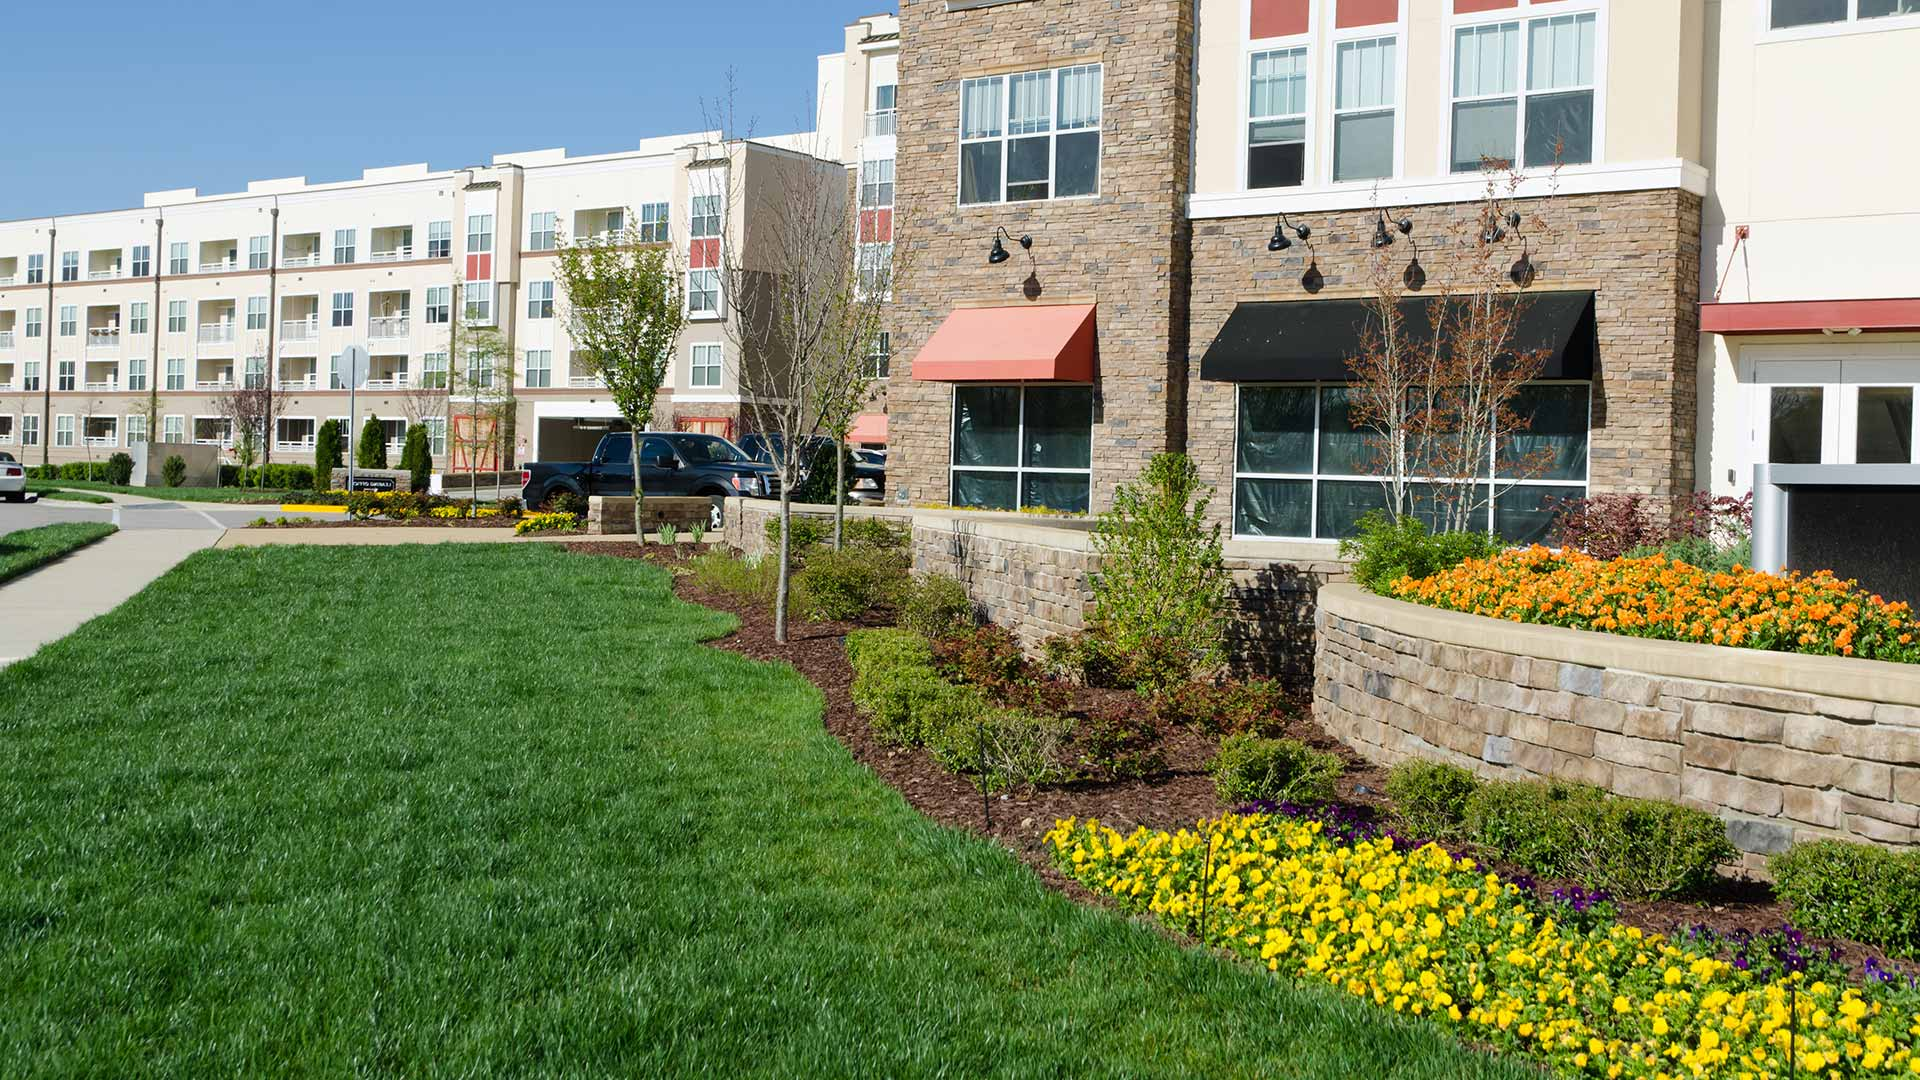 Commercial landscape design near Bristow, VA.